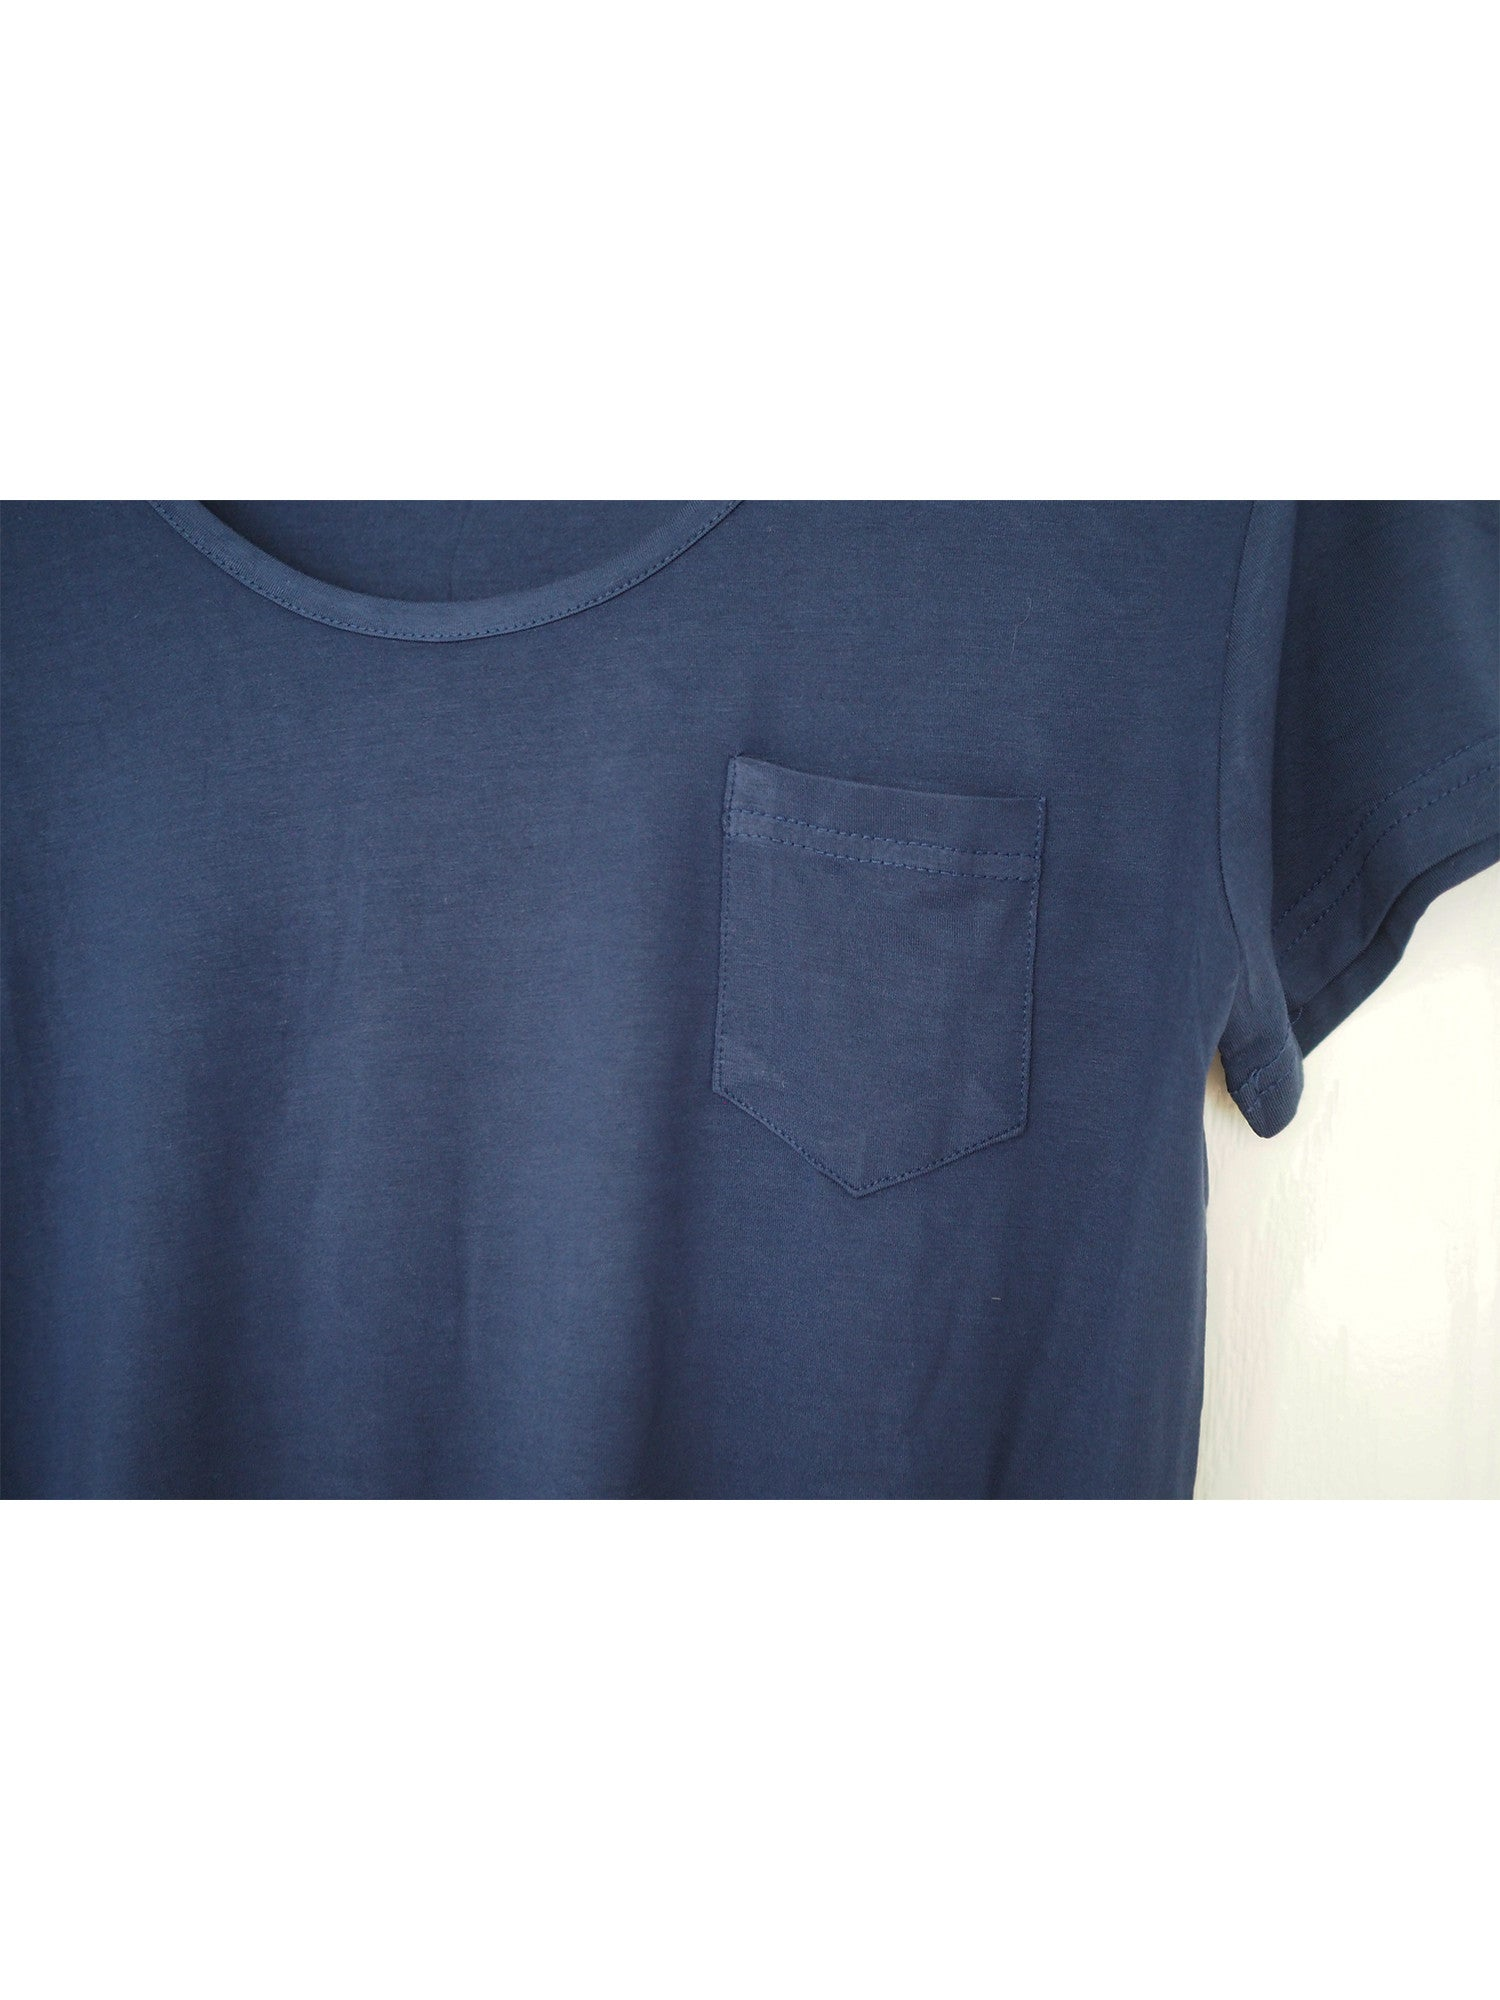 'Charisa' Blue Pocket Cotton Top